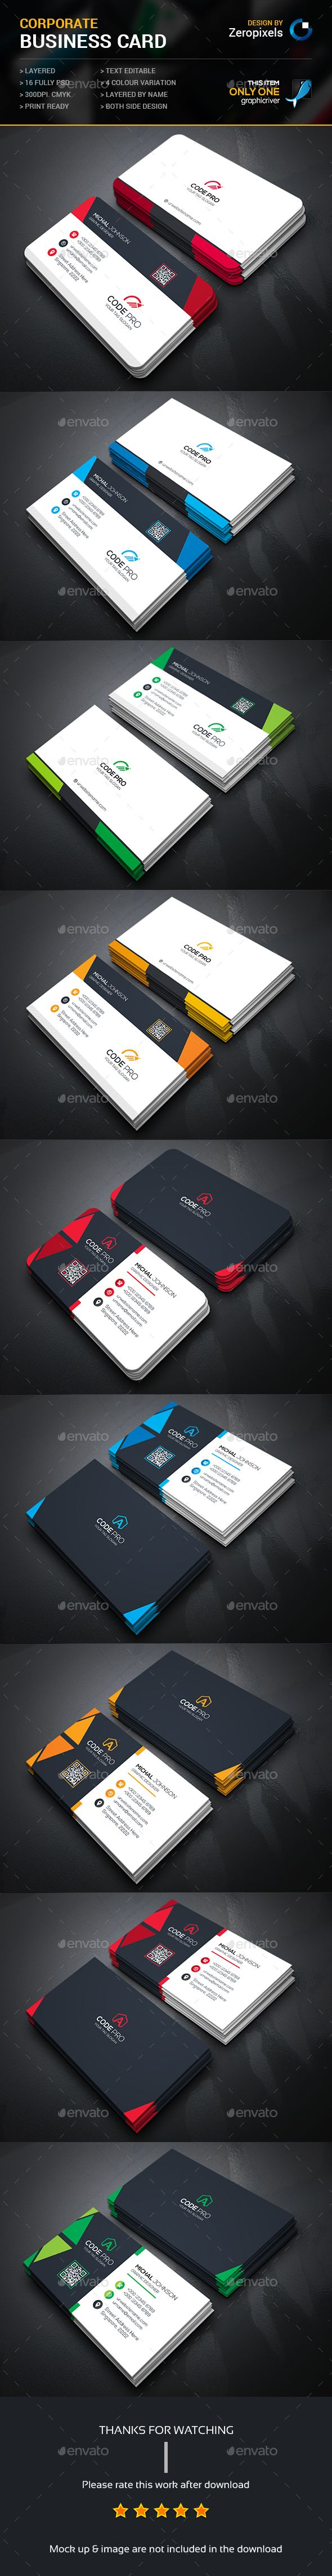 Boo business cards images free business cards 32 best images about business card on pinterest business card bundle magicingreecefo images magicingreecefo Gallery